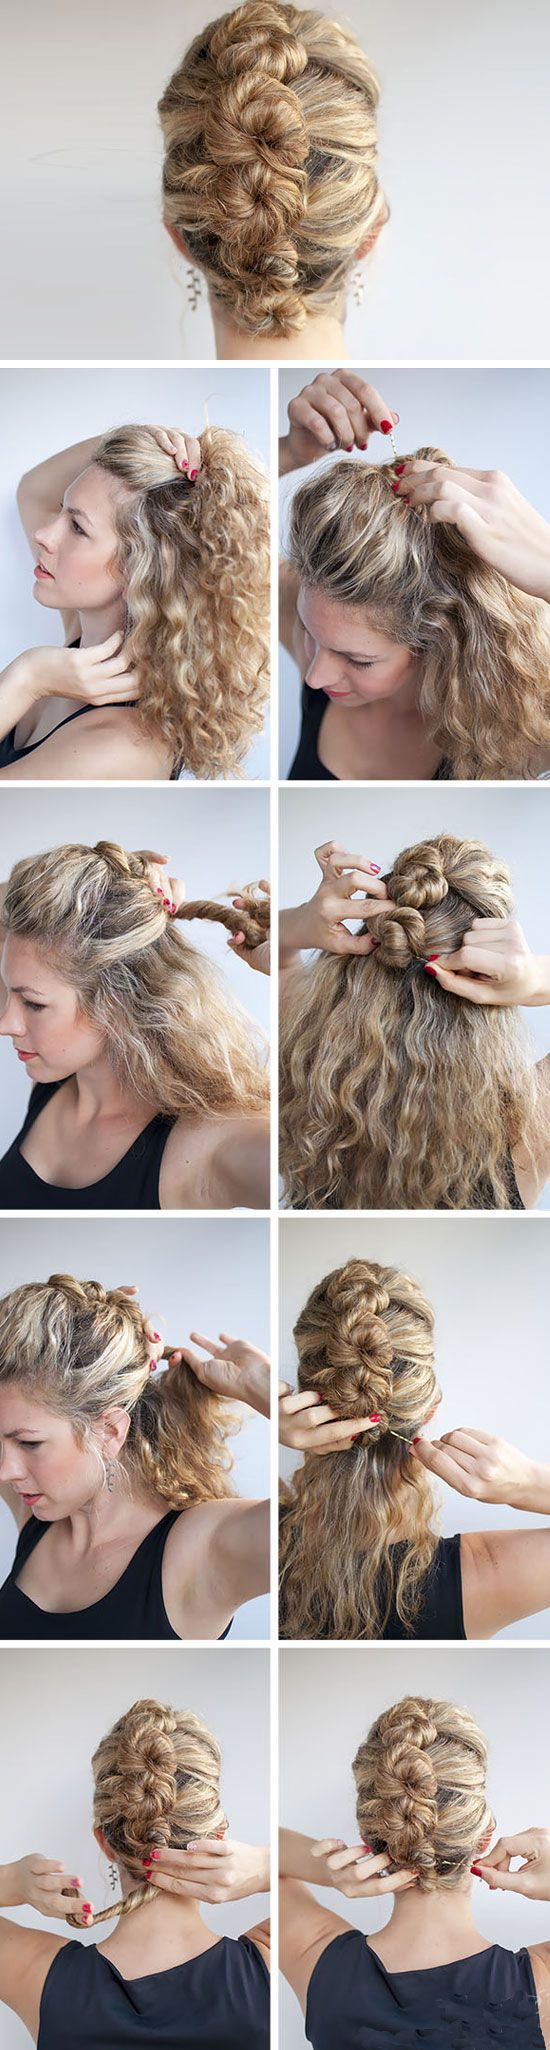 25+ beautiful easy hairstyles for weddings ideas on pinterest